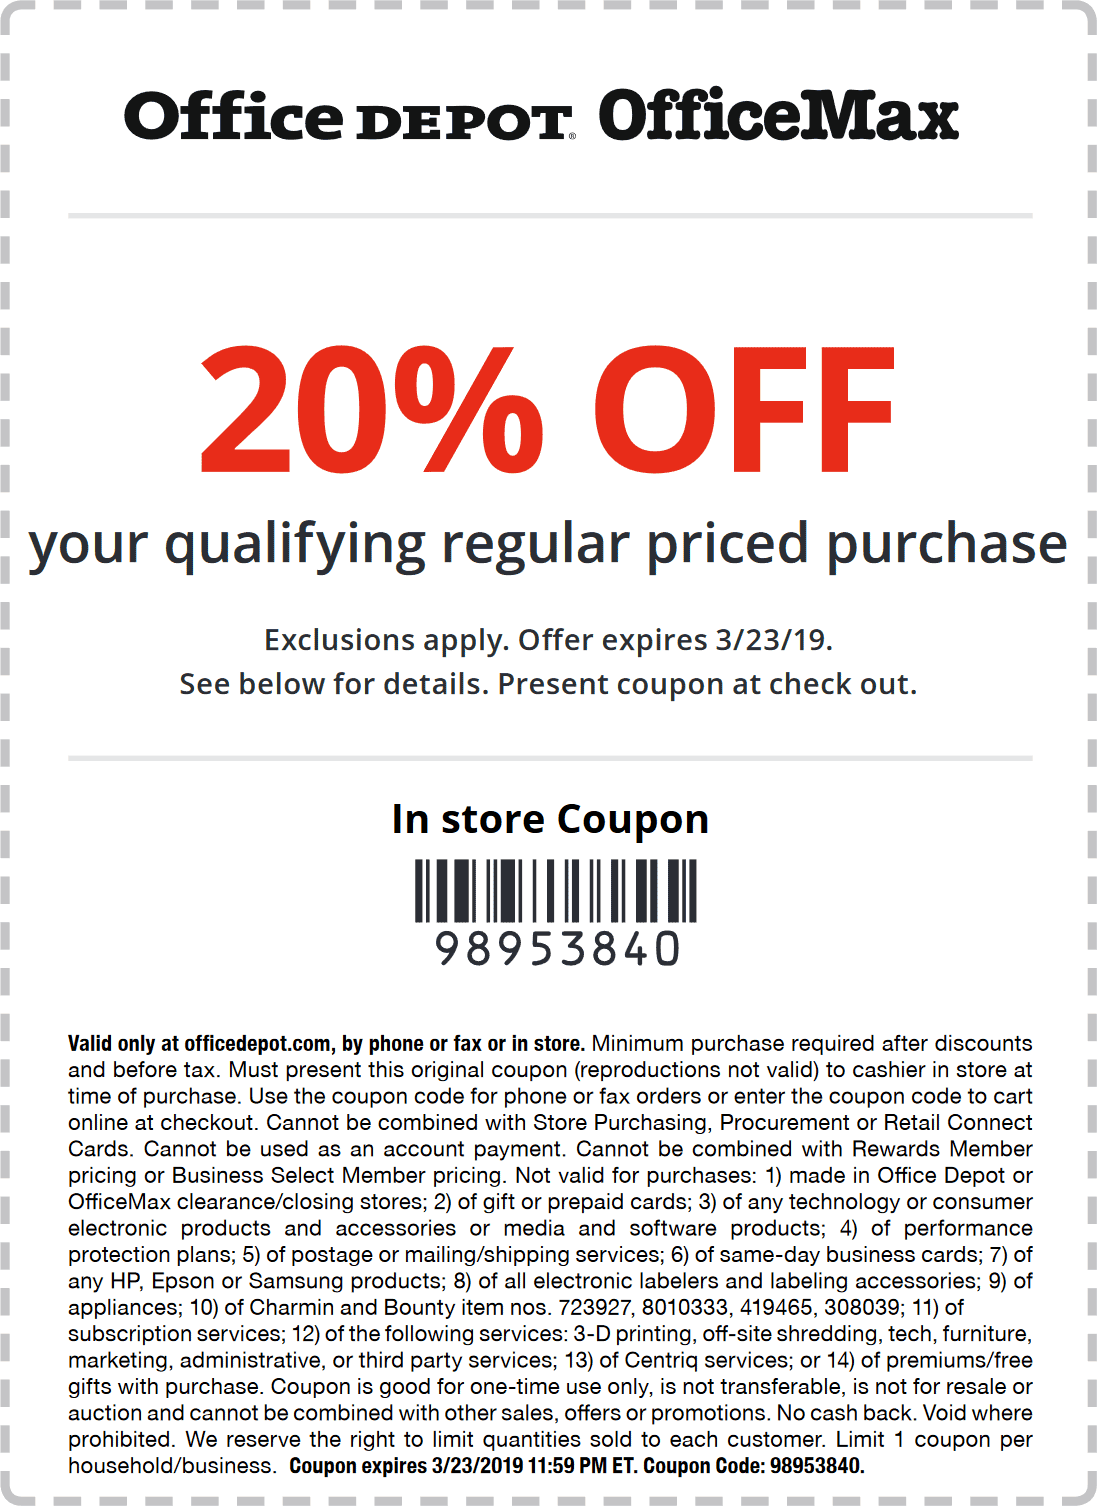 Office Depot Coupon February 2020 20% off at Office Depot & OfficeMax, or online via promo code 98953840